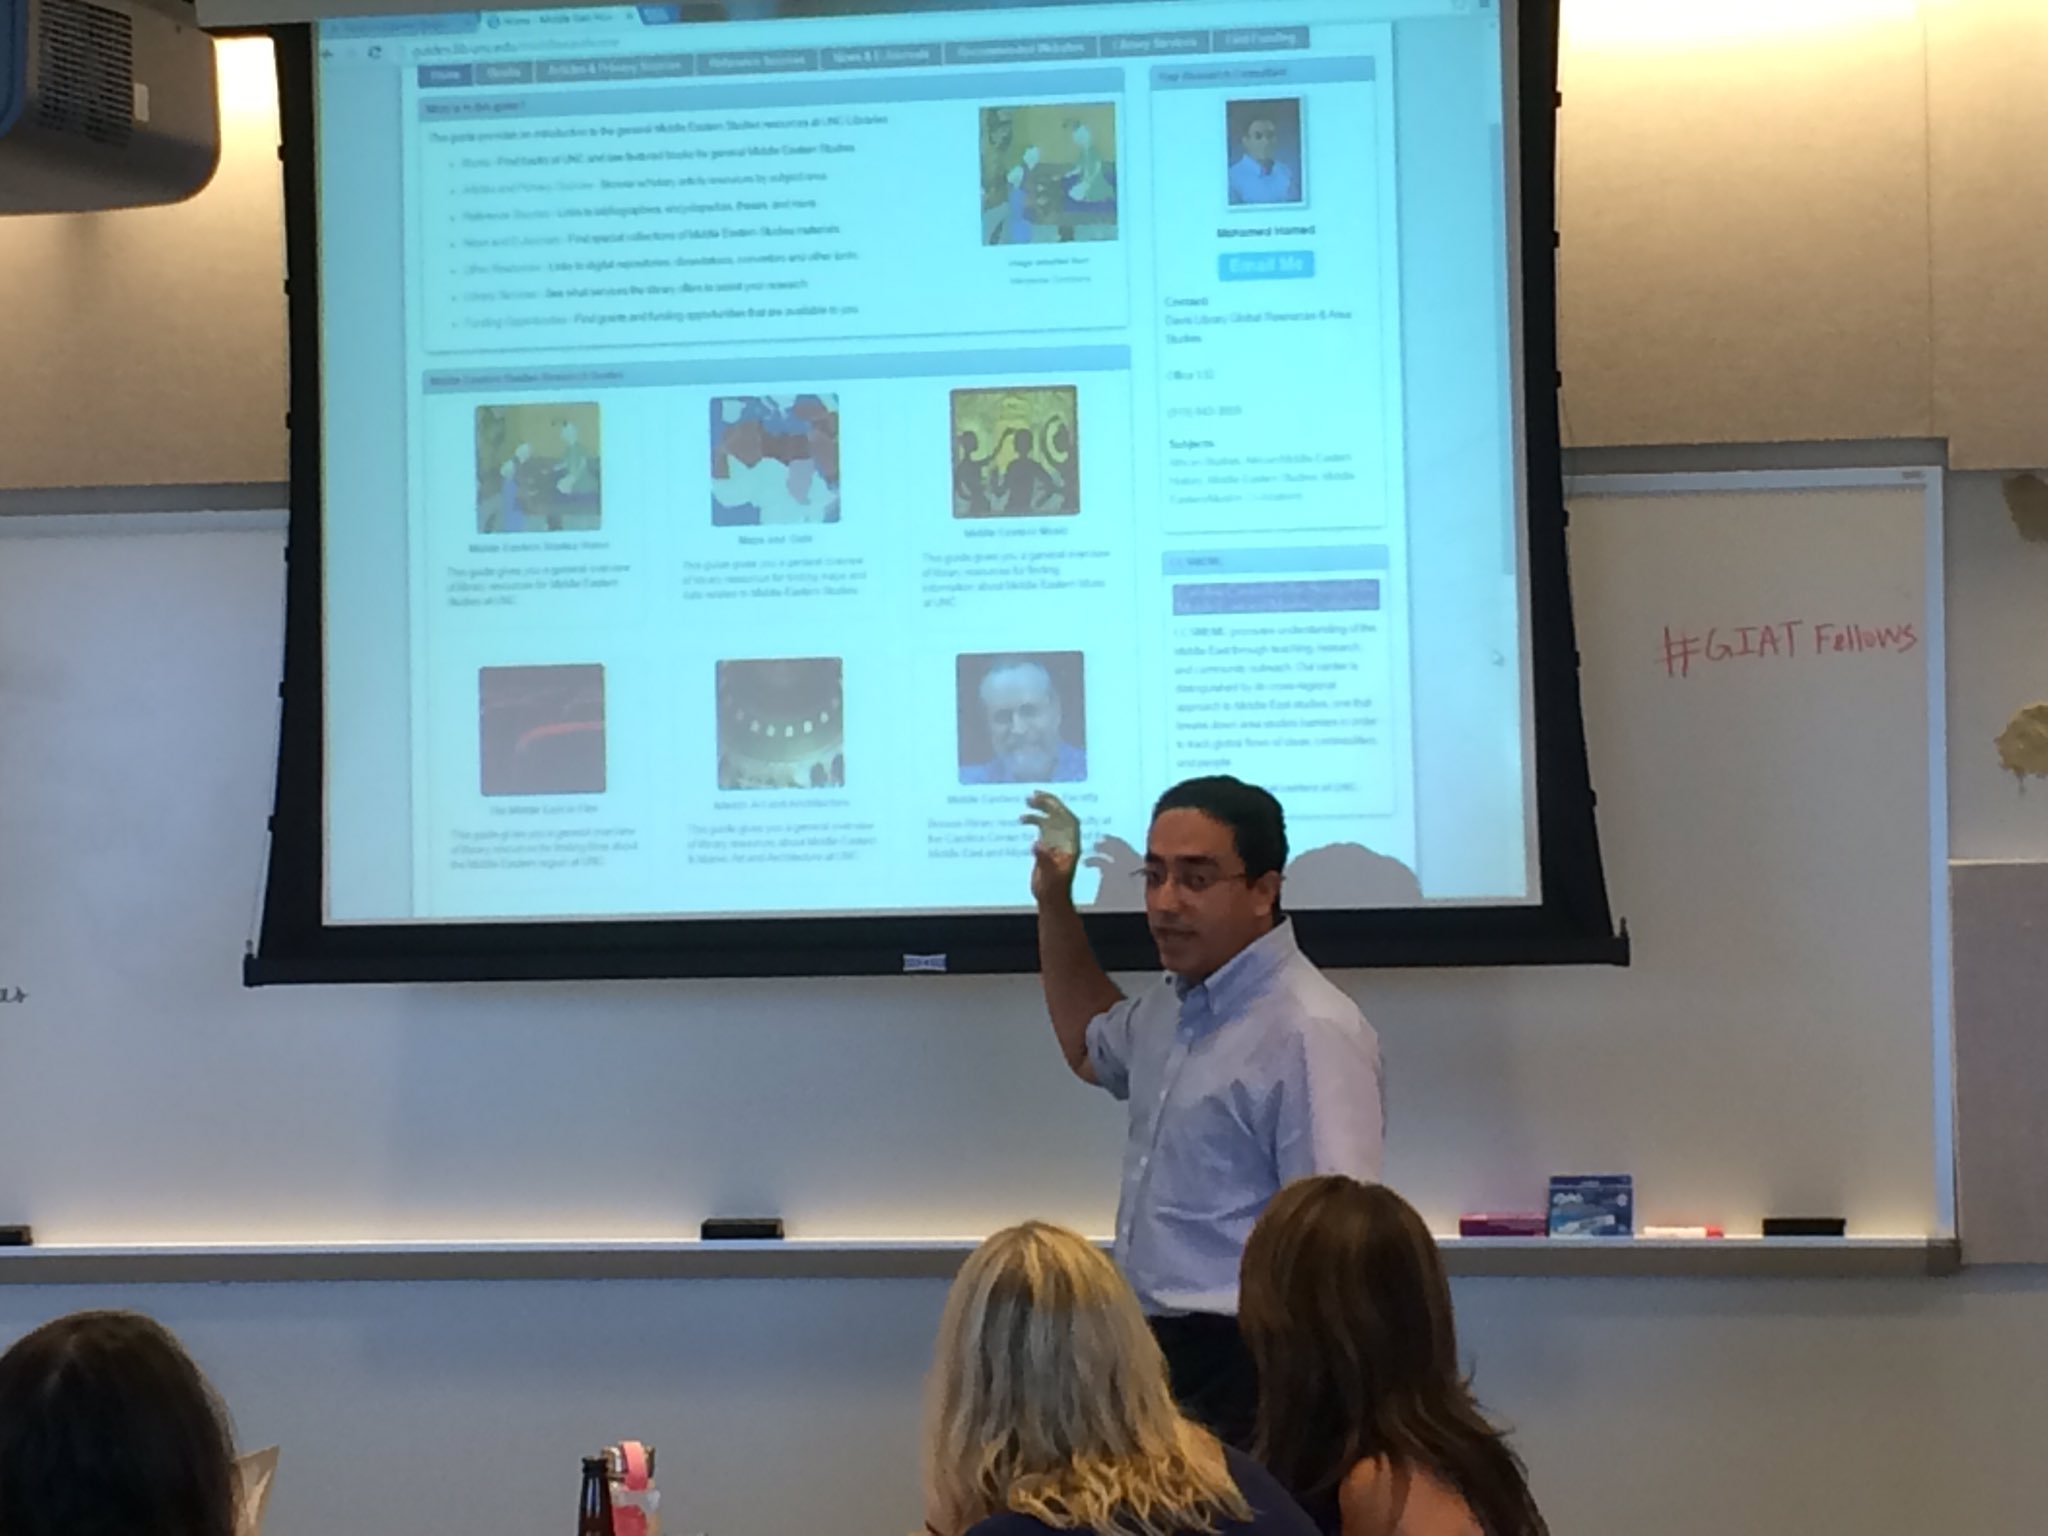 Mohammed Hamed sharing  @UNCLibrary's resources with our #GIATFellows https://t.co/O0NCURGLWj